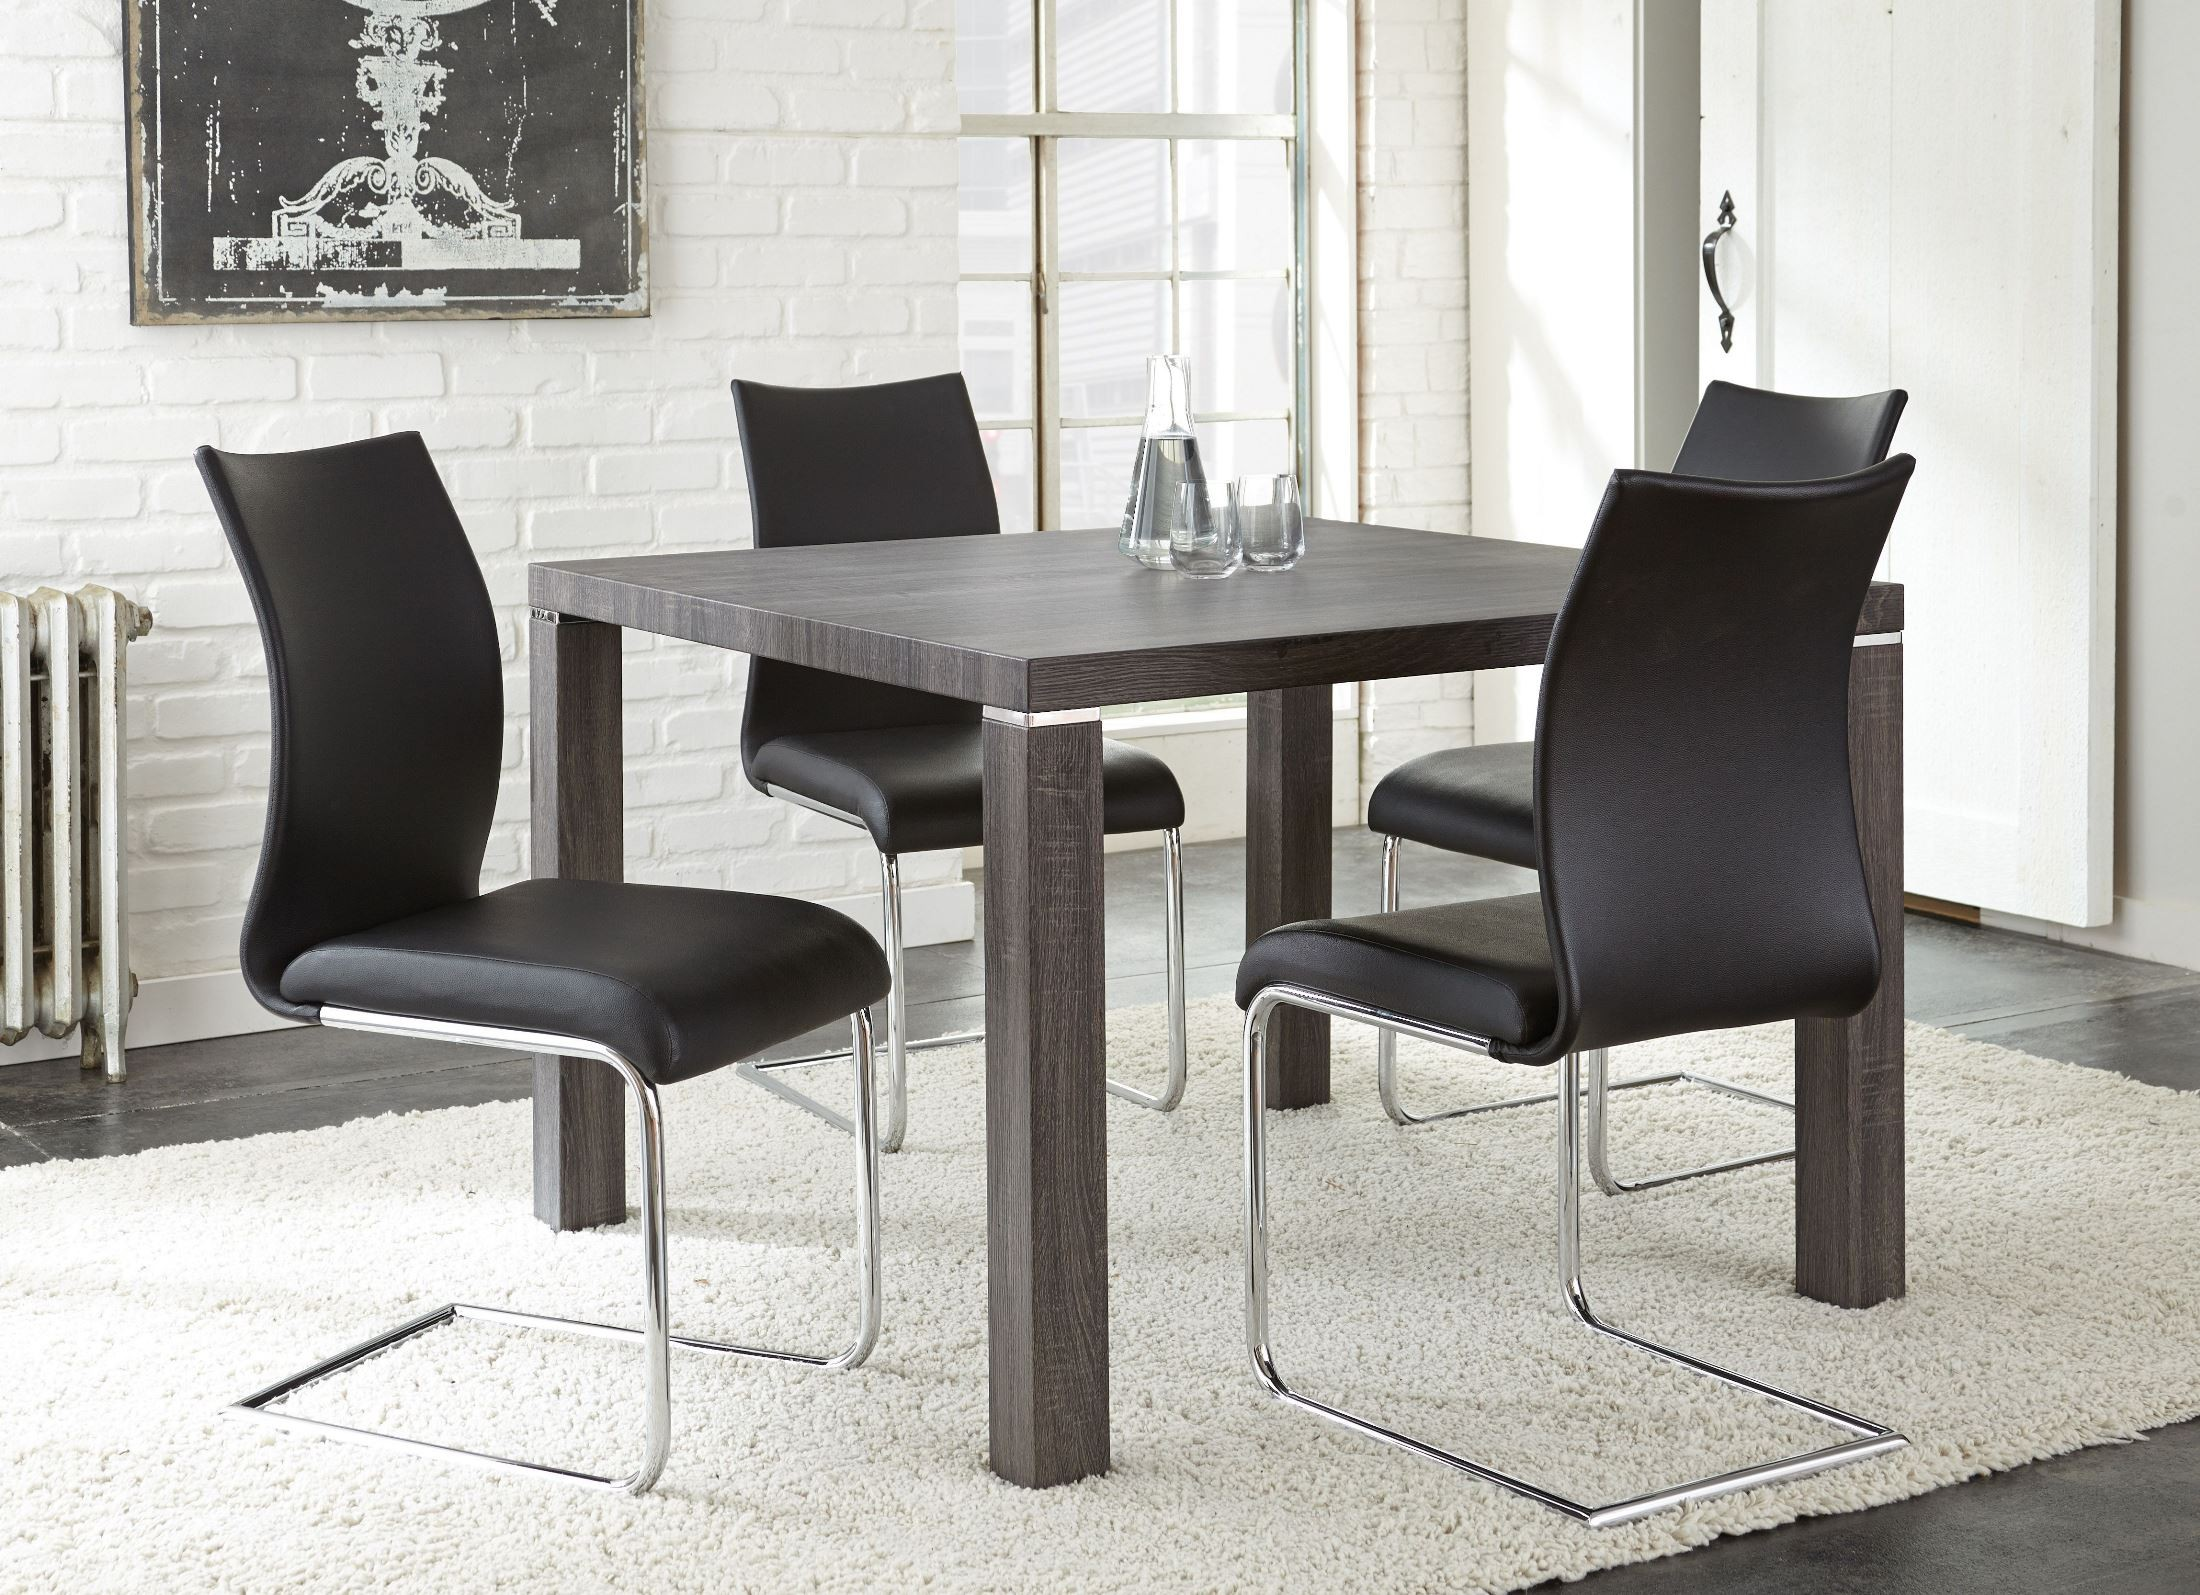 Randall Charcoal Gray Dining Room Set From Steve Silver